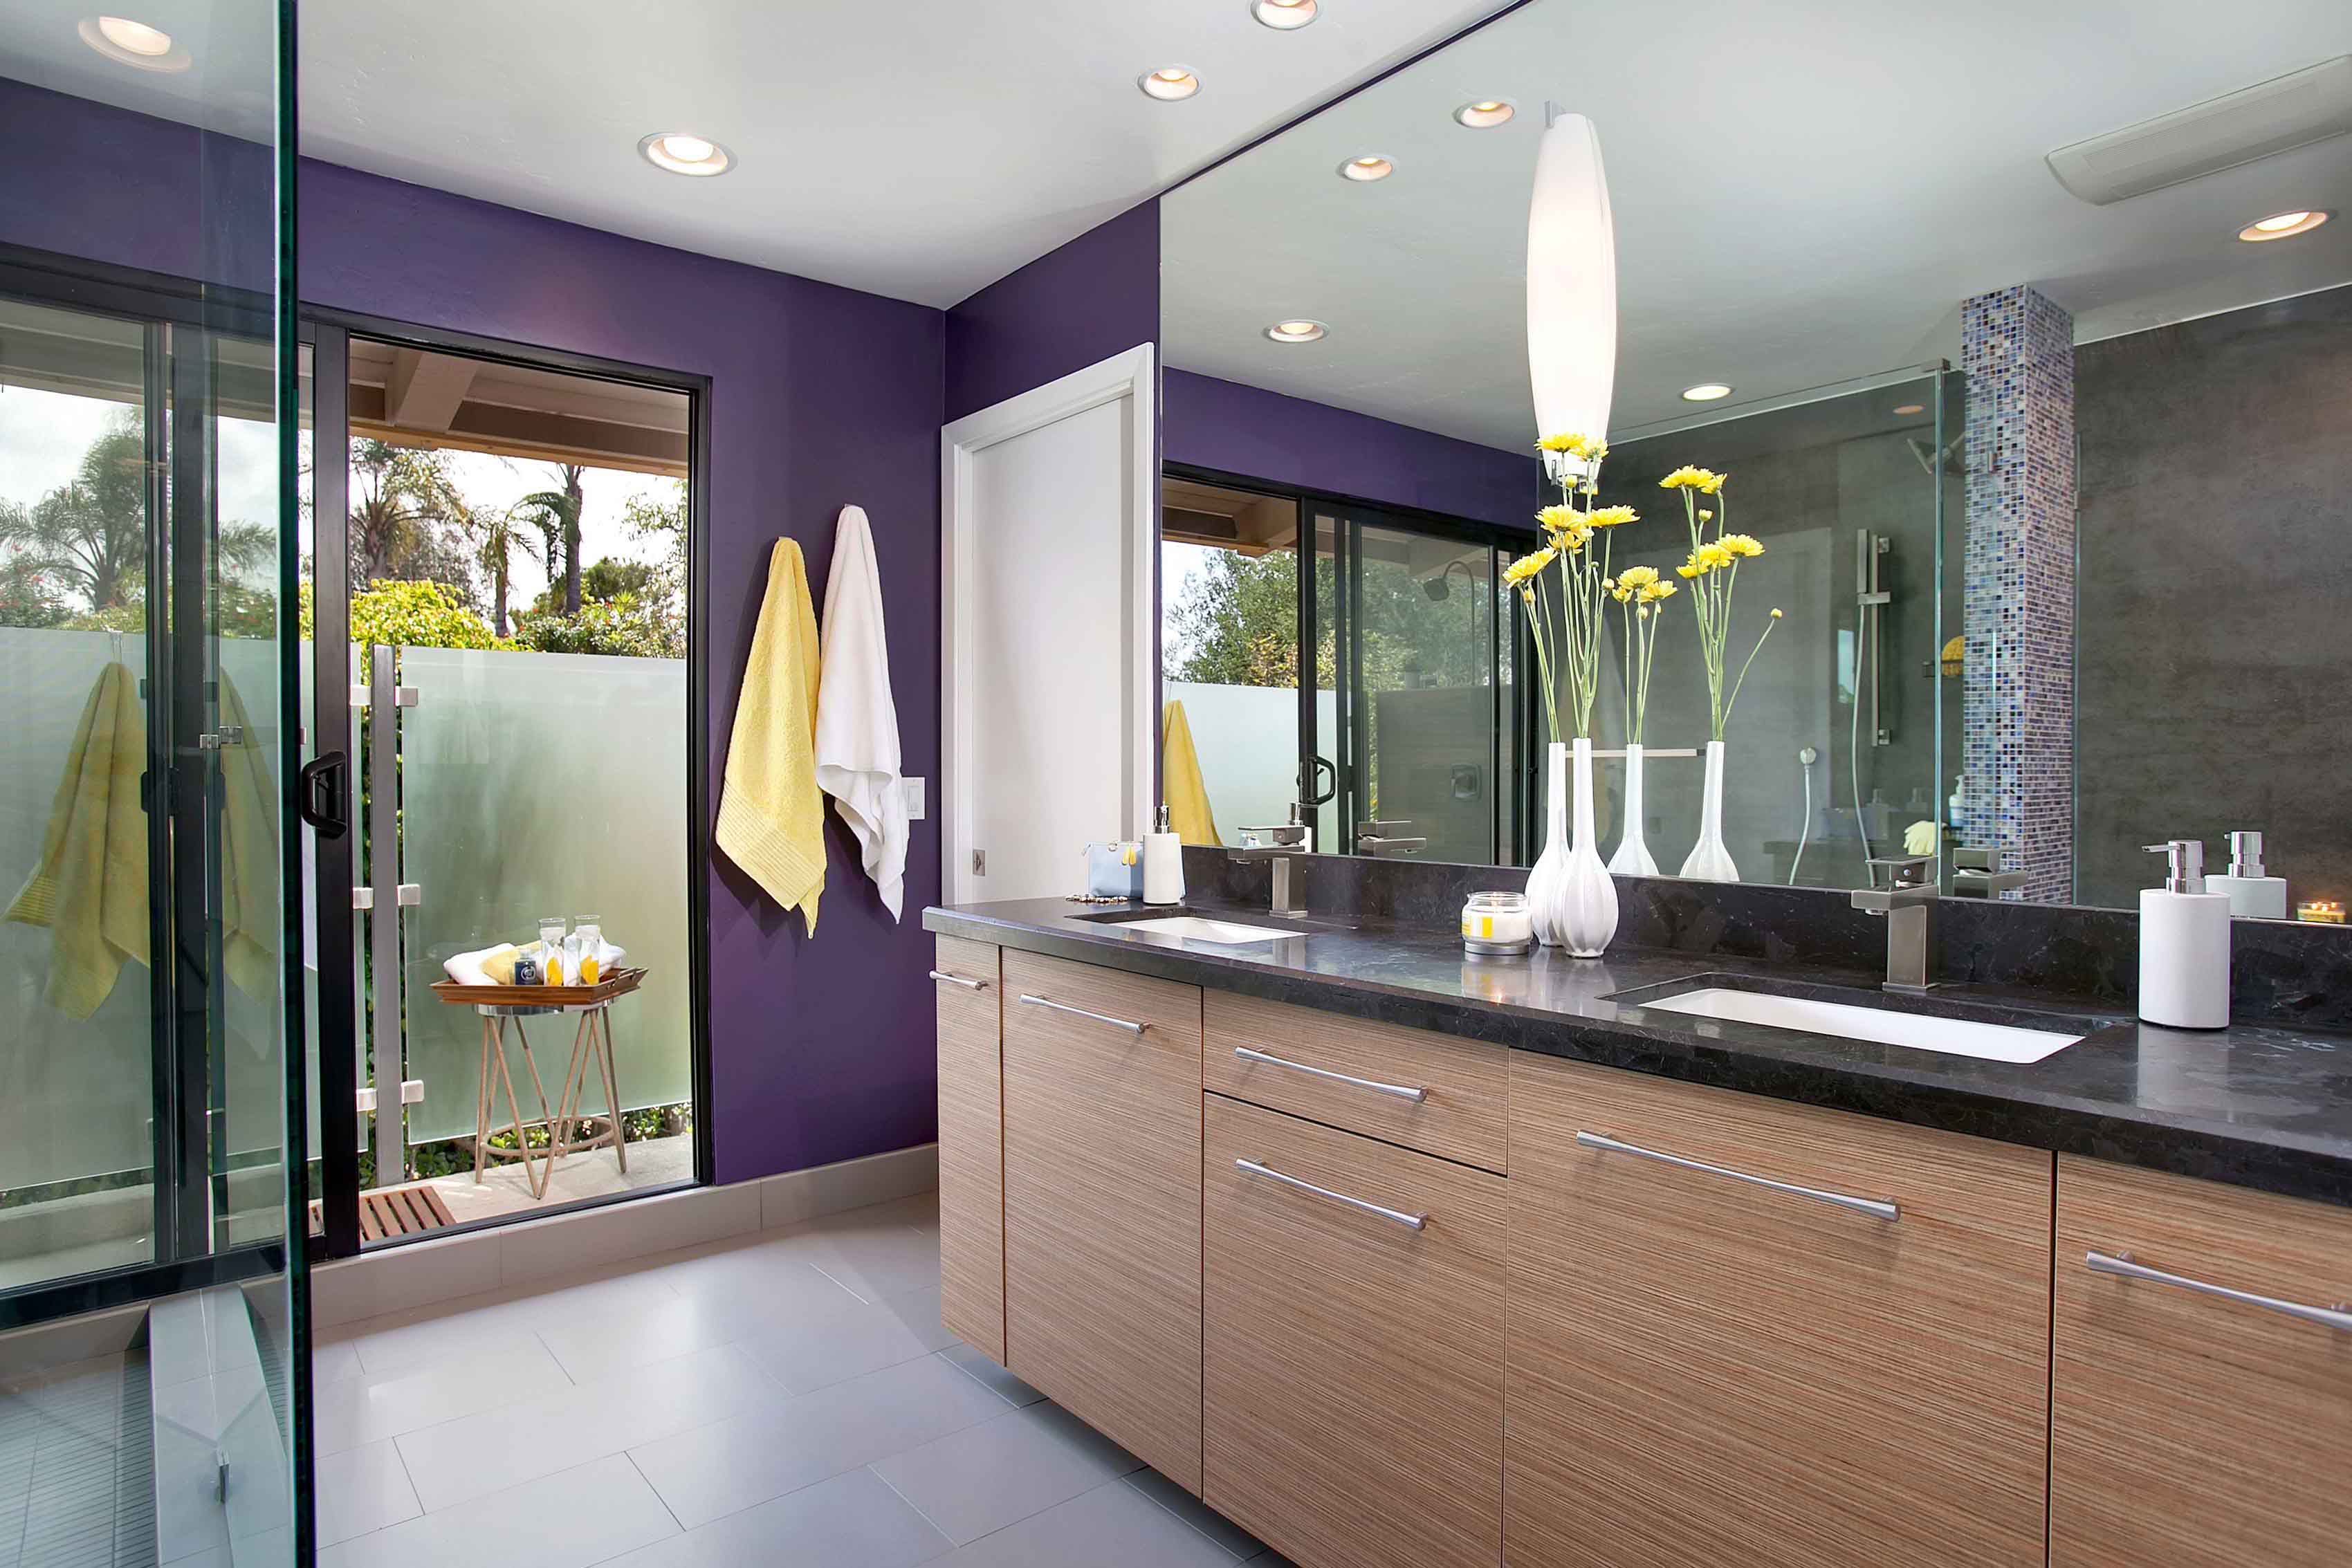 Modern Bathroom Bathroom Repaint And Remodel With Pop Color (View 3 of 7)